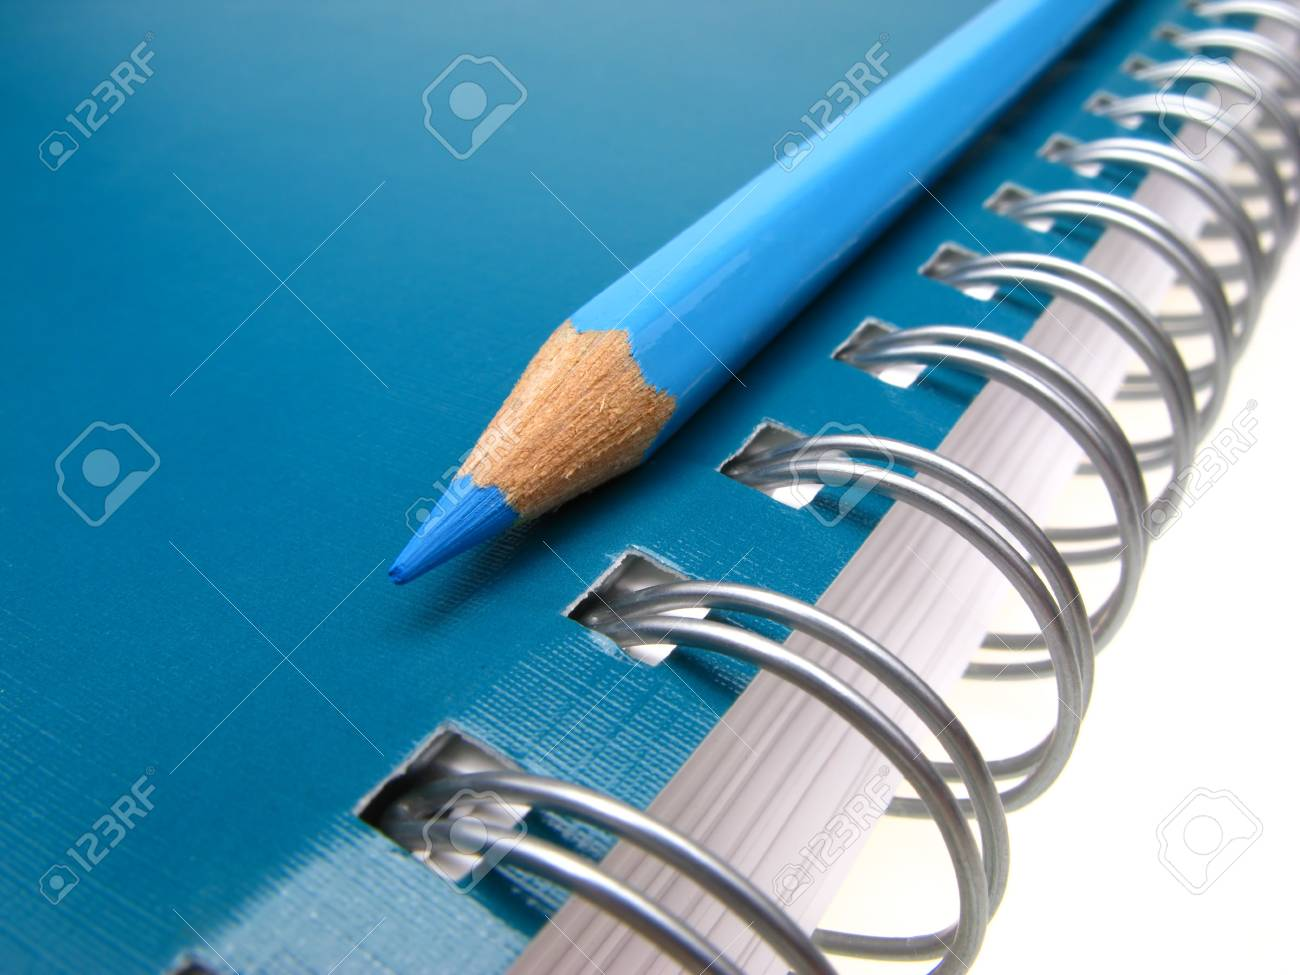 blue pencil and spiral of  notebook on  light background,  close up Stock Photo - 2338717